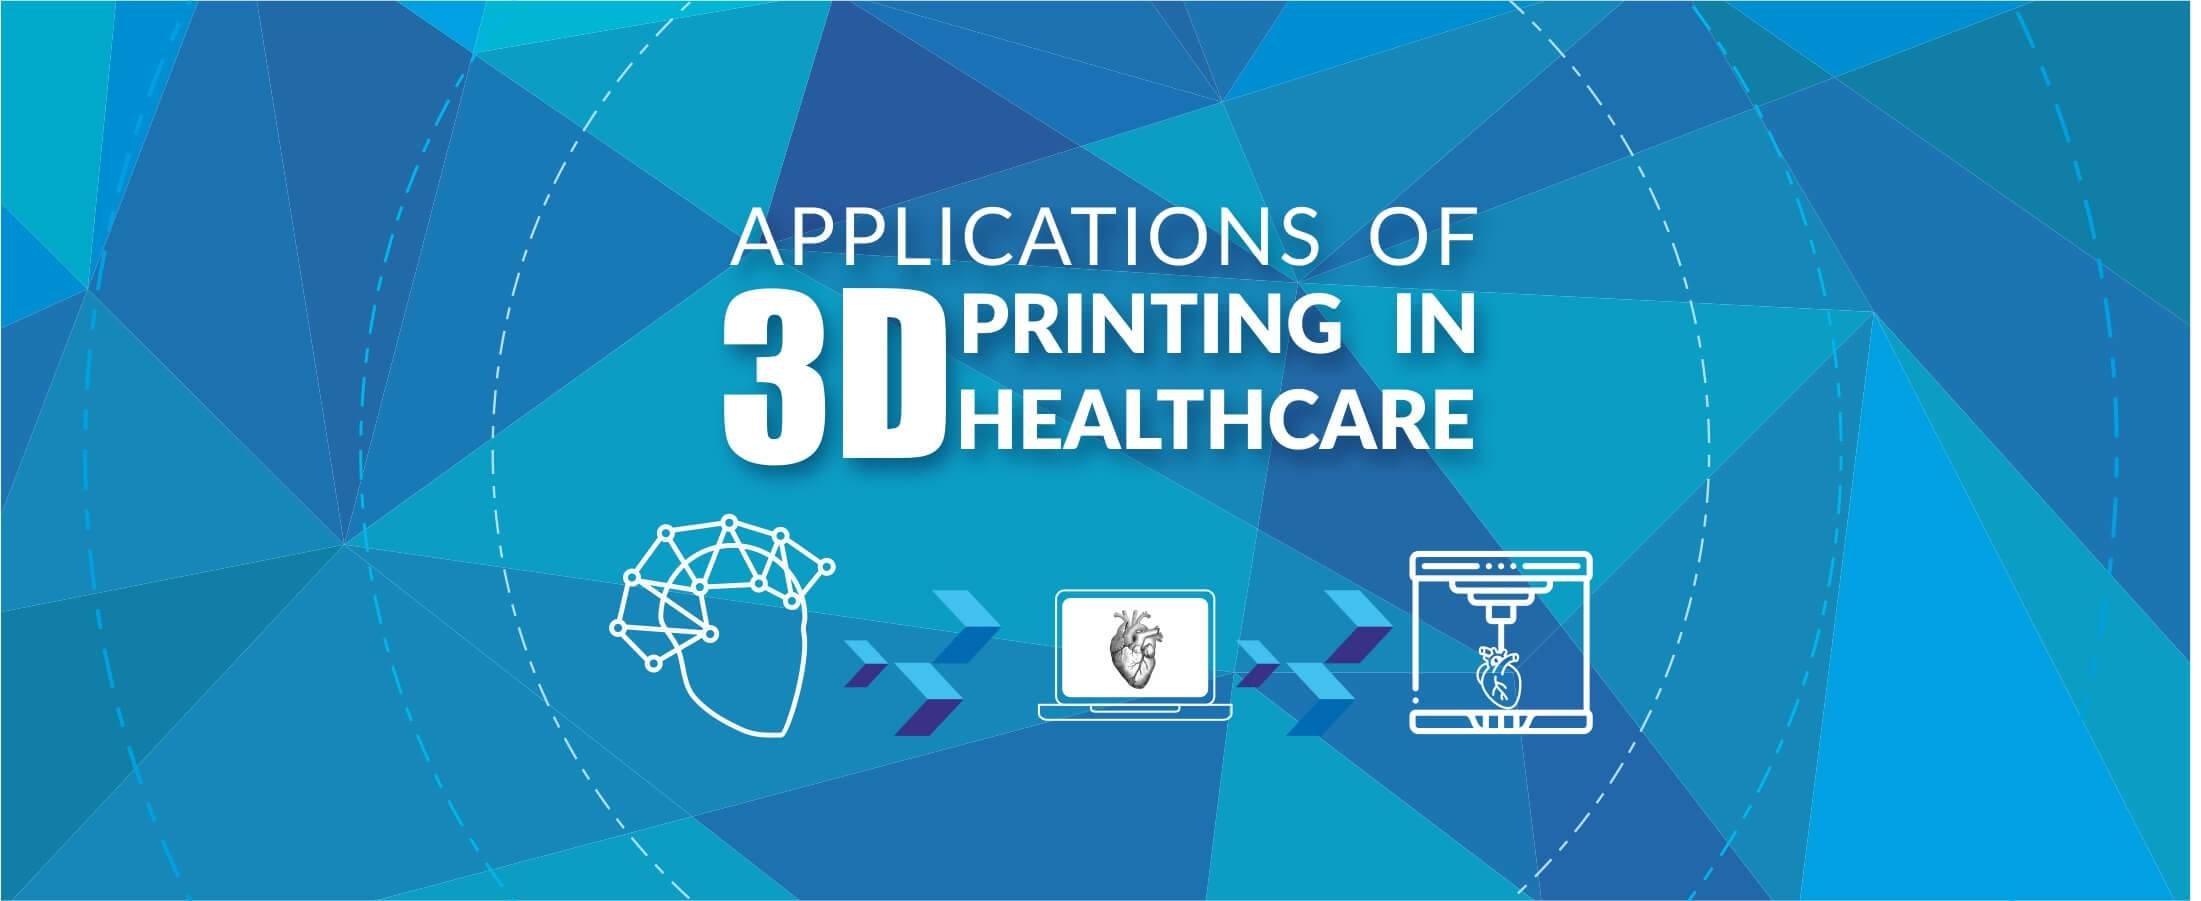 Applications of 3D Printing in Healthcare